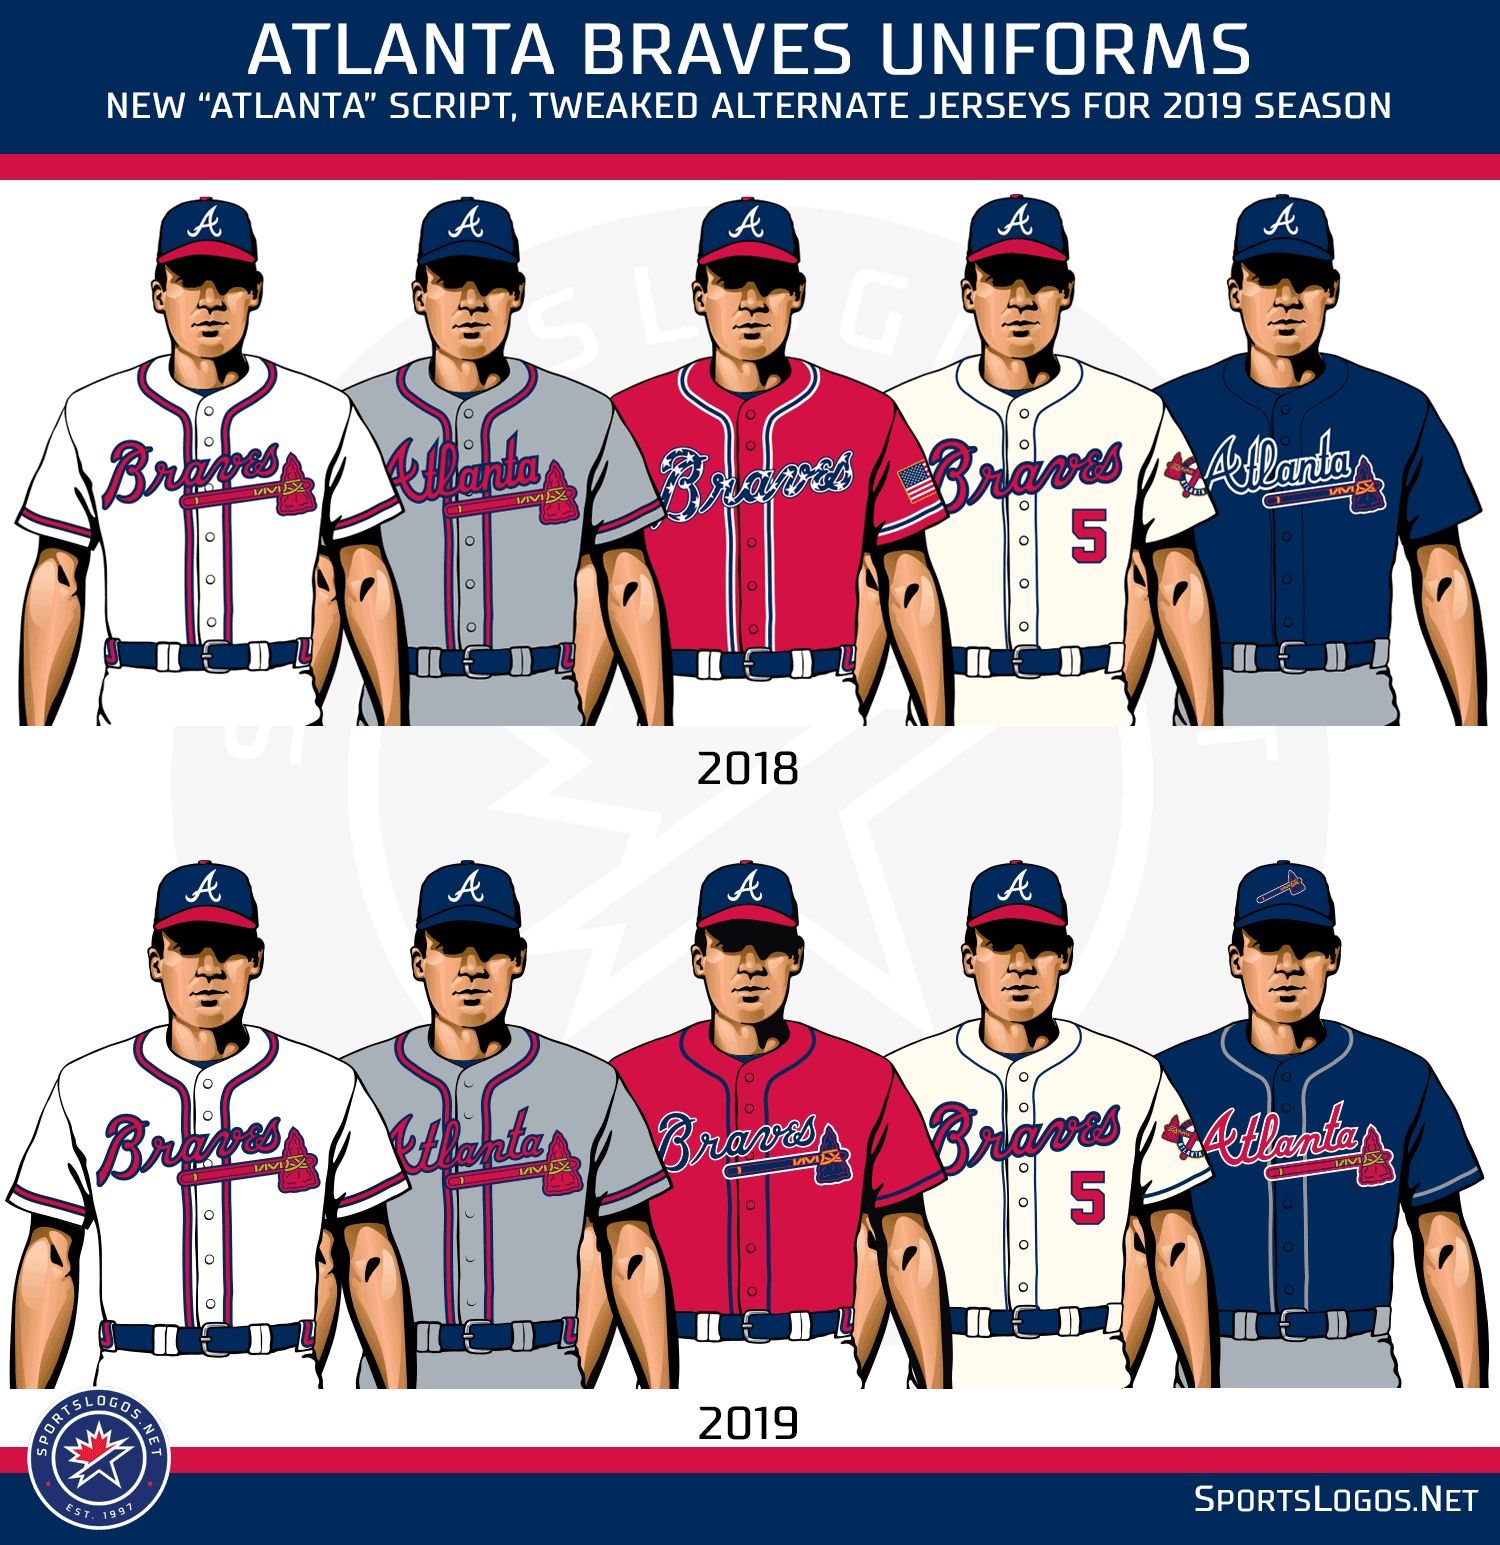 reputable site 15eca 440a1 2019 MLB New Logos and Uniforms | Chris Creamer's ...